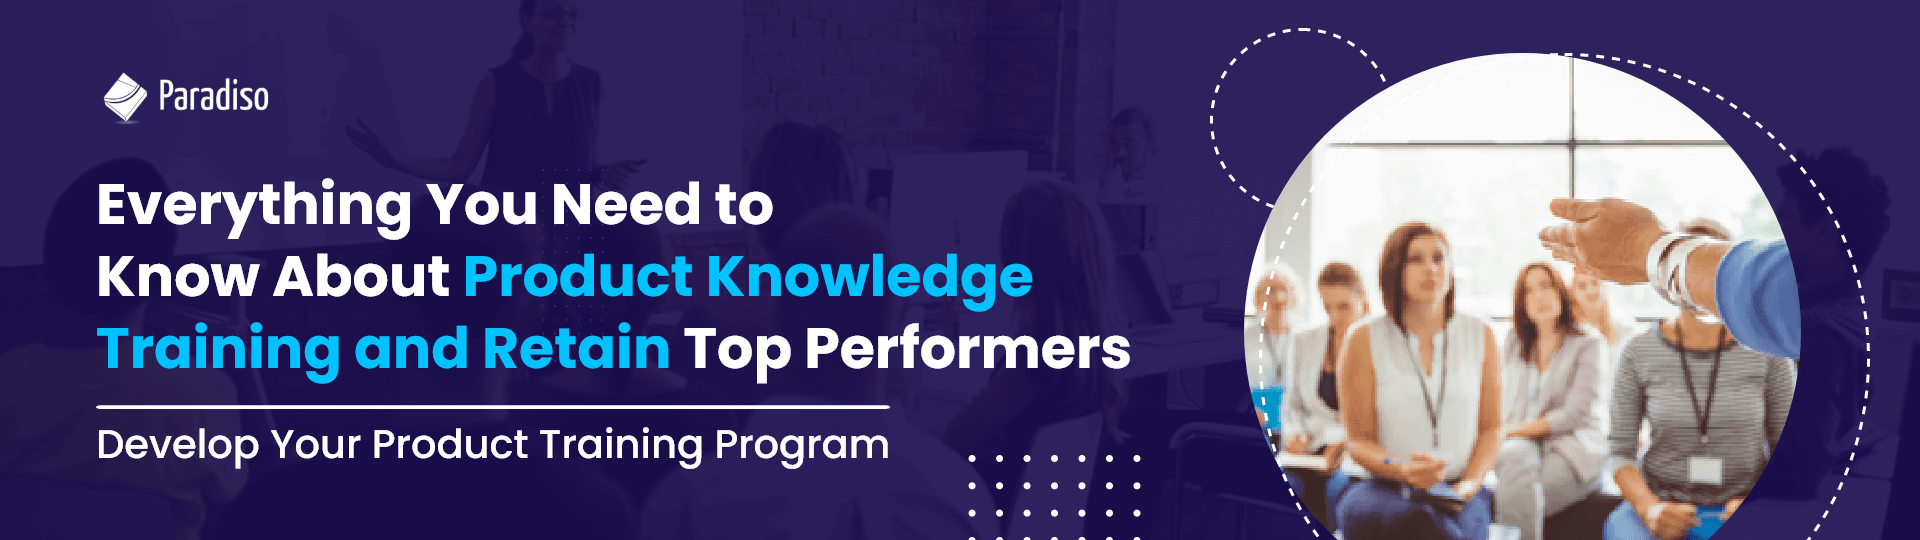 Everything You Need to Know About Product Training